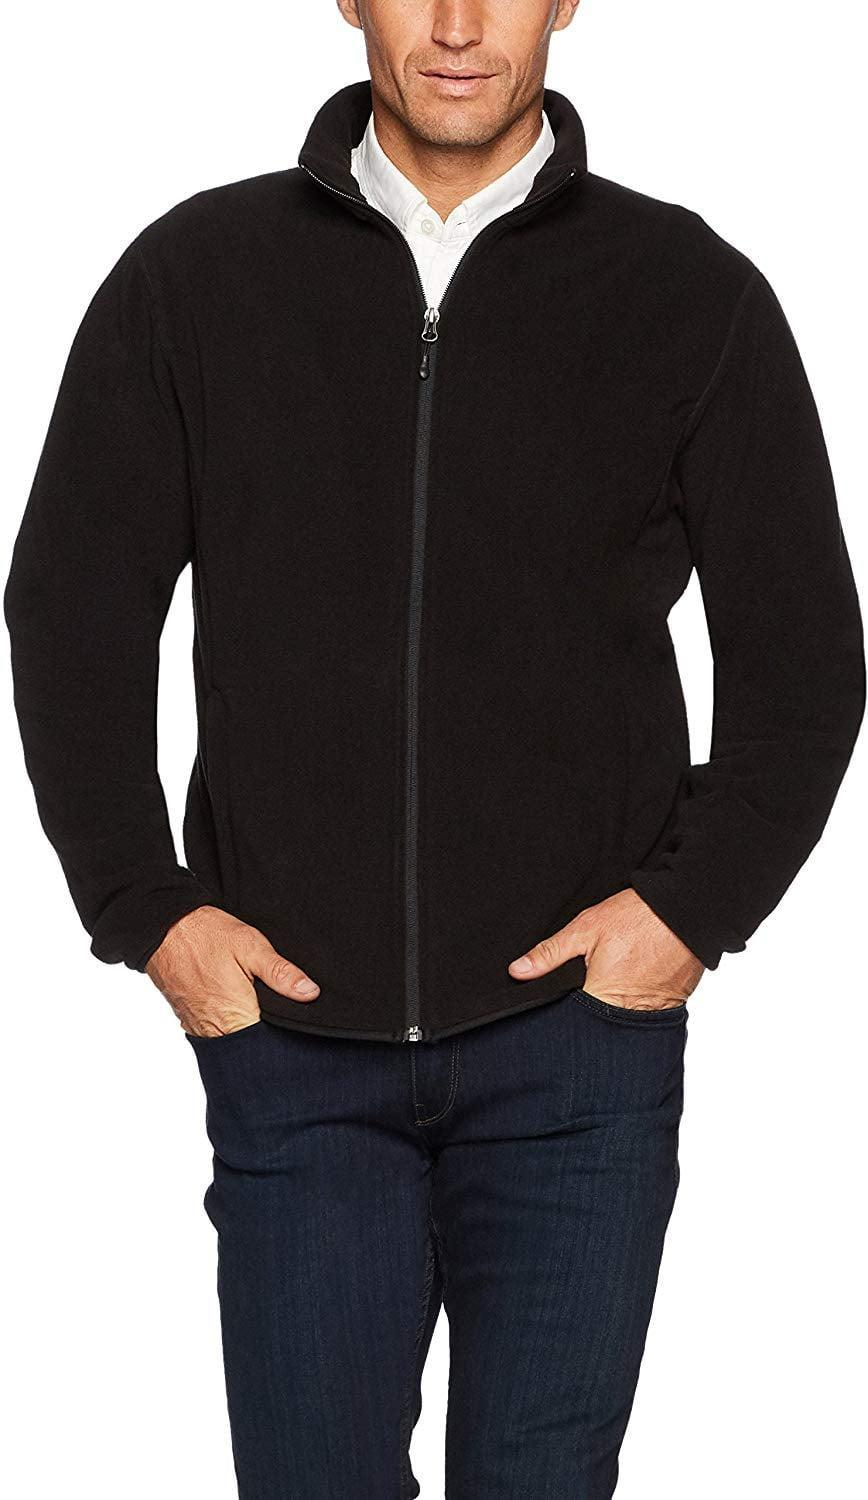 <p>We are big fans of this versatile <span>Amazon Essentials Men's Full-Zip Polar Fleece Jacket</span> ($21).</p>